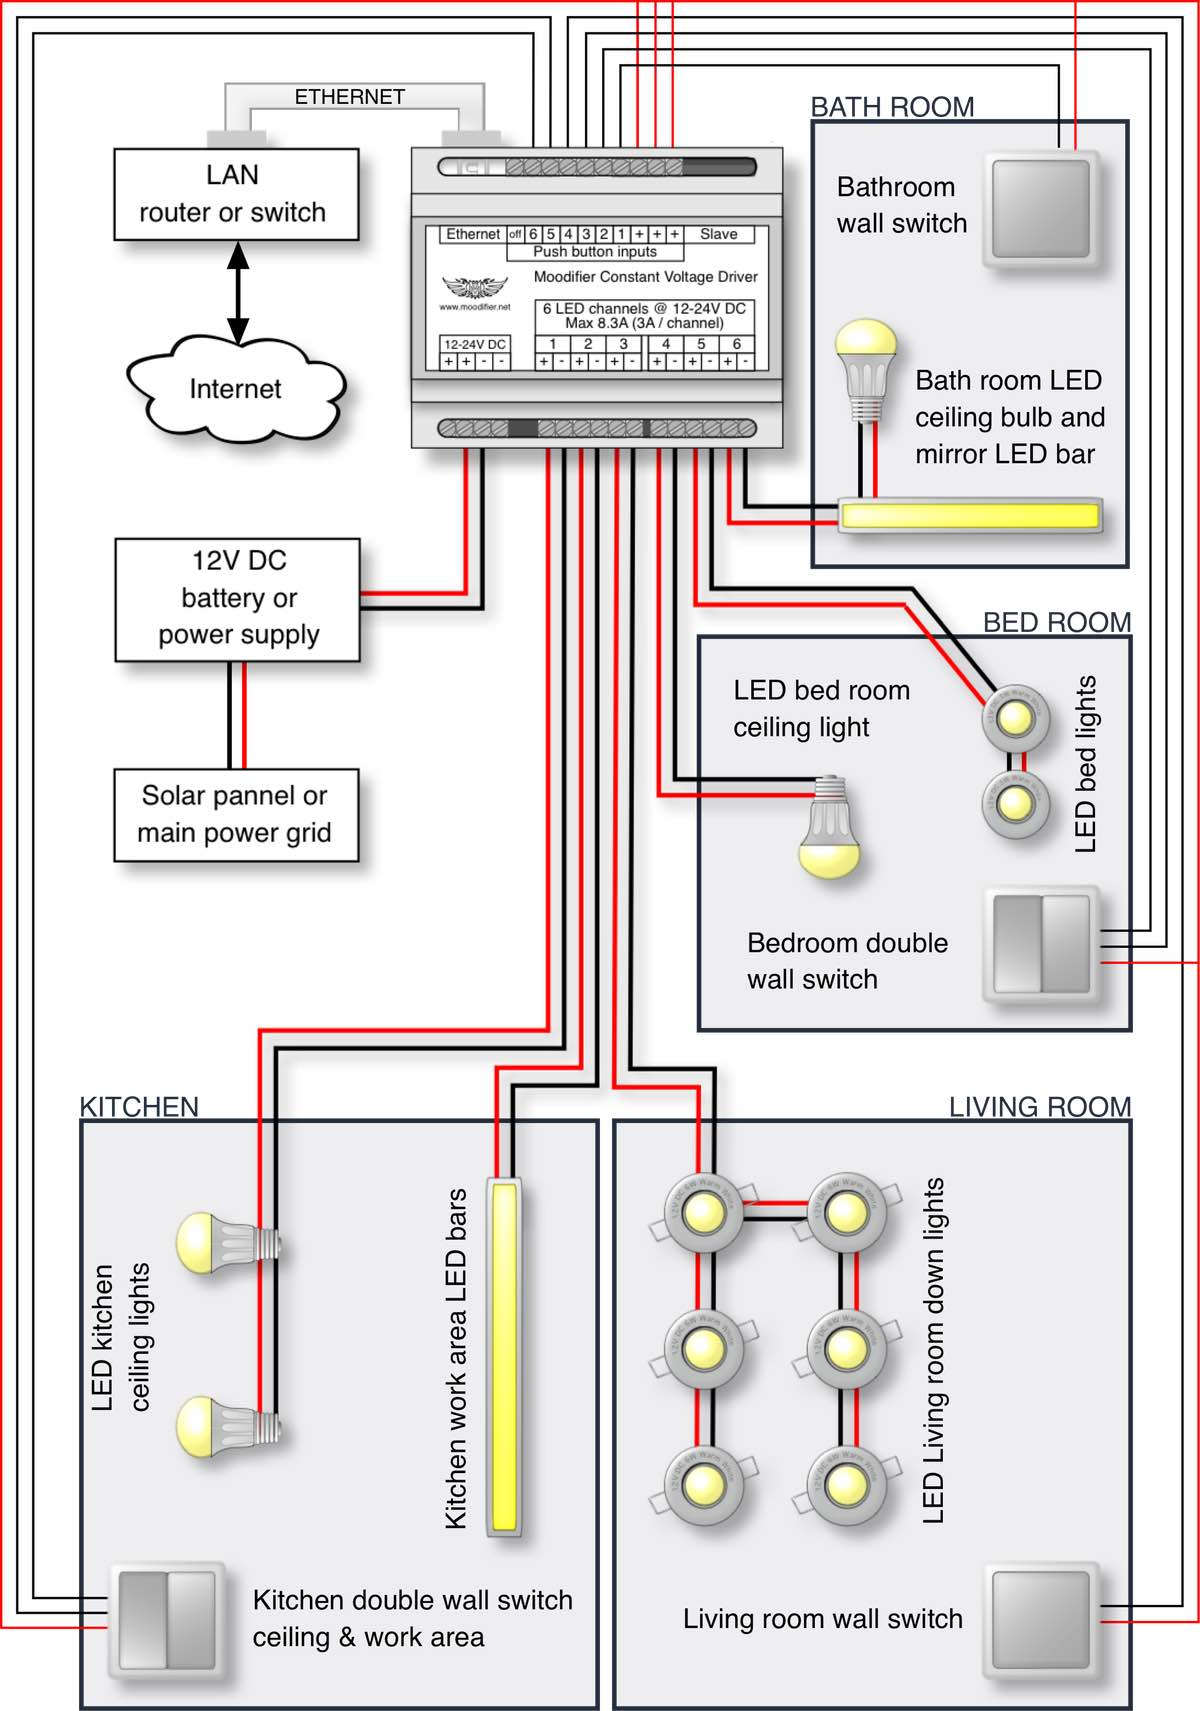 12 24v Dc Moodifier Led Lighting Installation White Paper Parallel Wiring Diagram As You Can Se In The There Are 4 Rooms A Kitchen Living Room Bed And Bath Cables Go From Constant Voltage